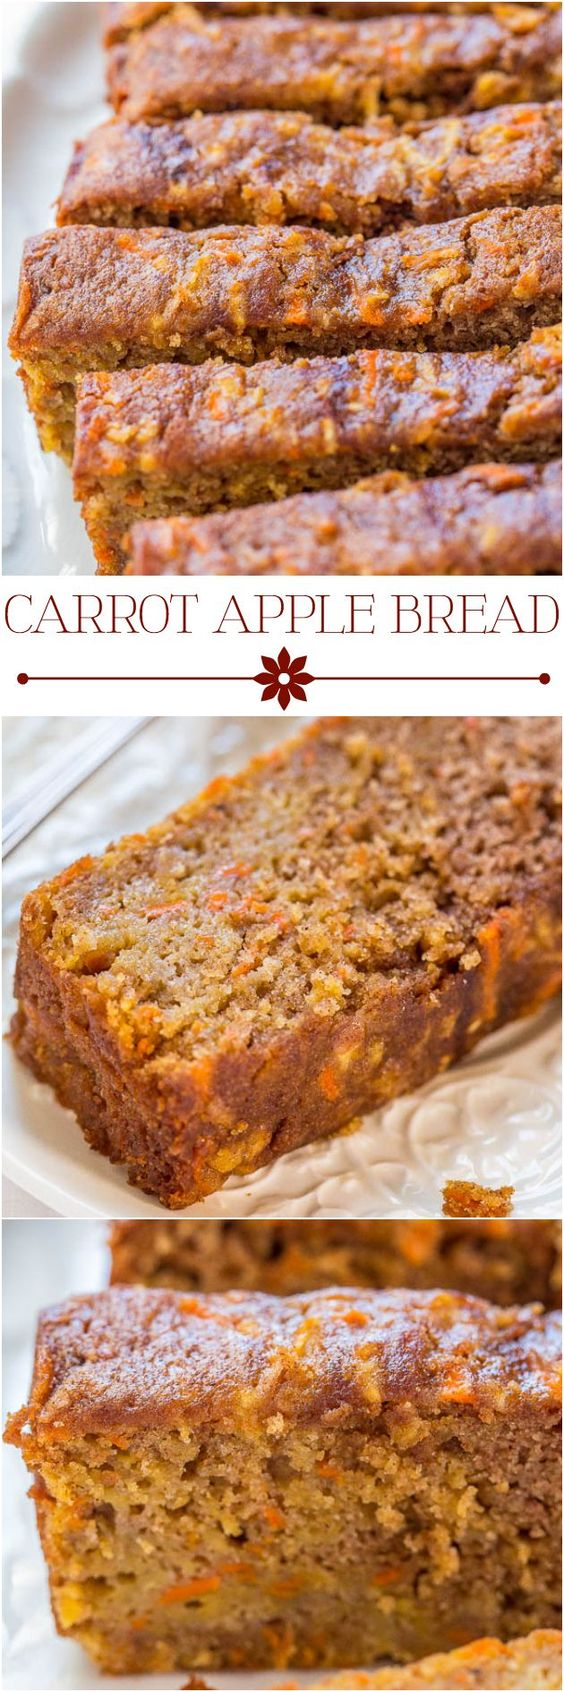 Carrot Apple Bread Recipe via Averie Cooks - Carrot cake with apples added and baked as a bread, so it's healthier! Super moist, packed with flavor, fast and easy!!